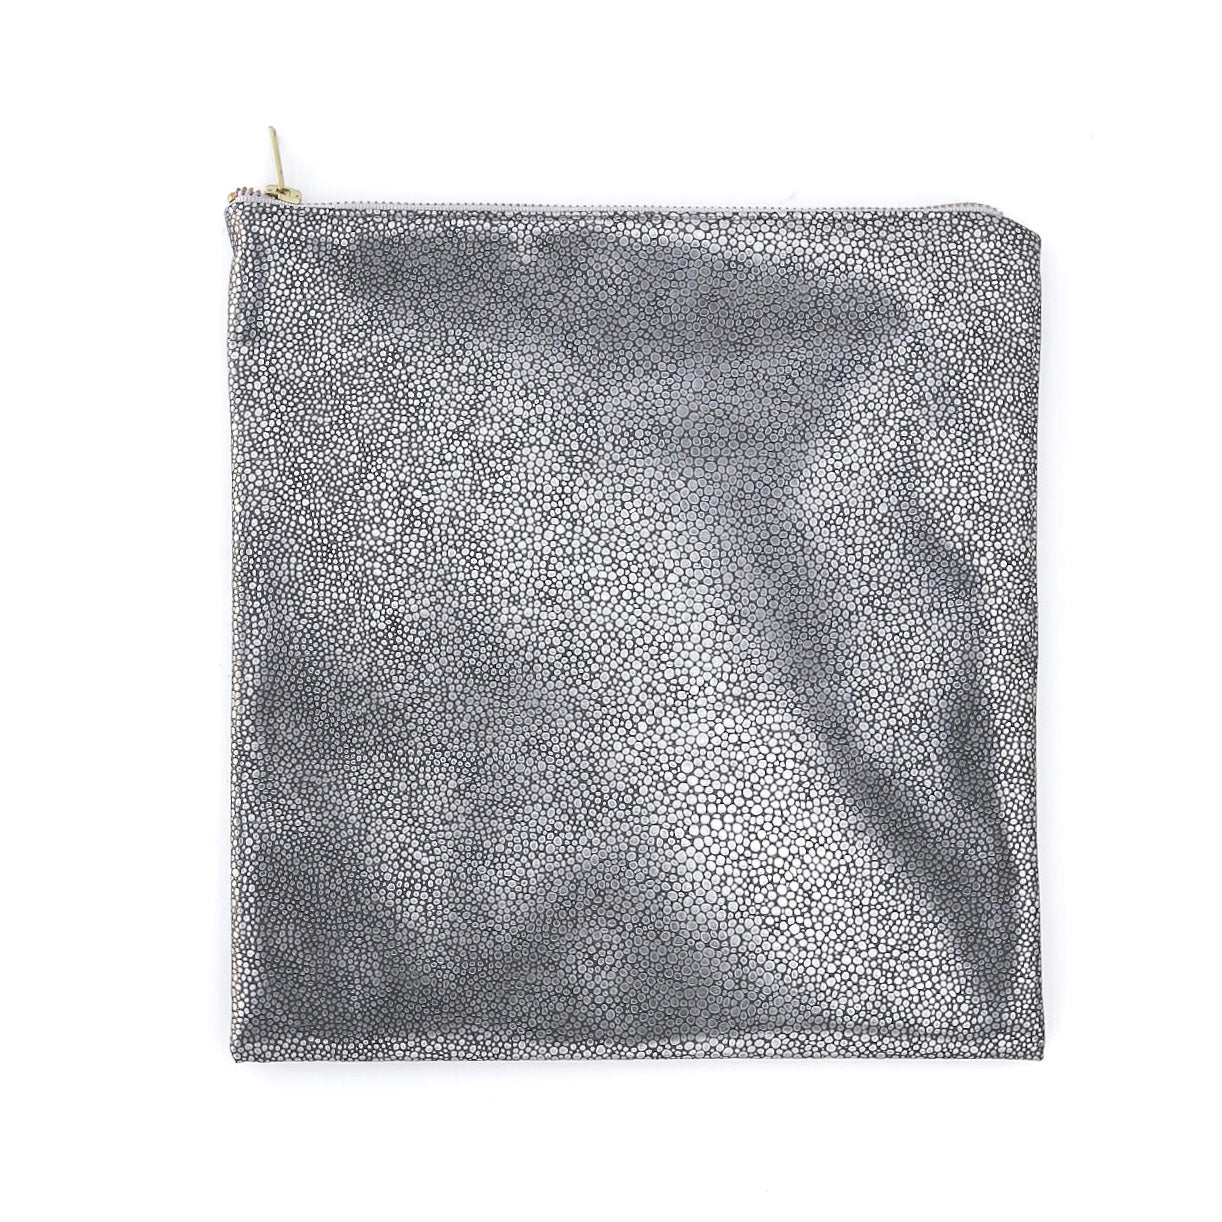 Callie Starlite Clutch